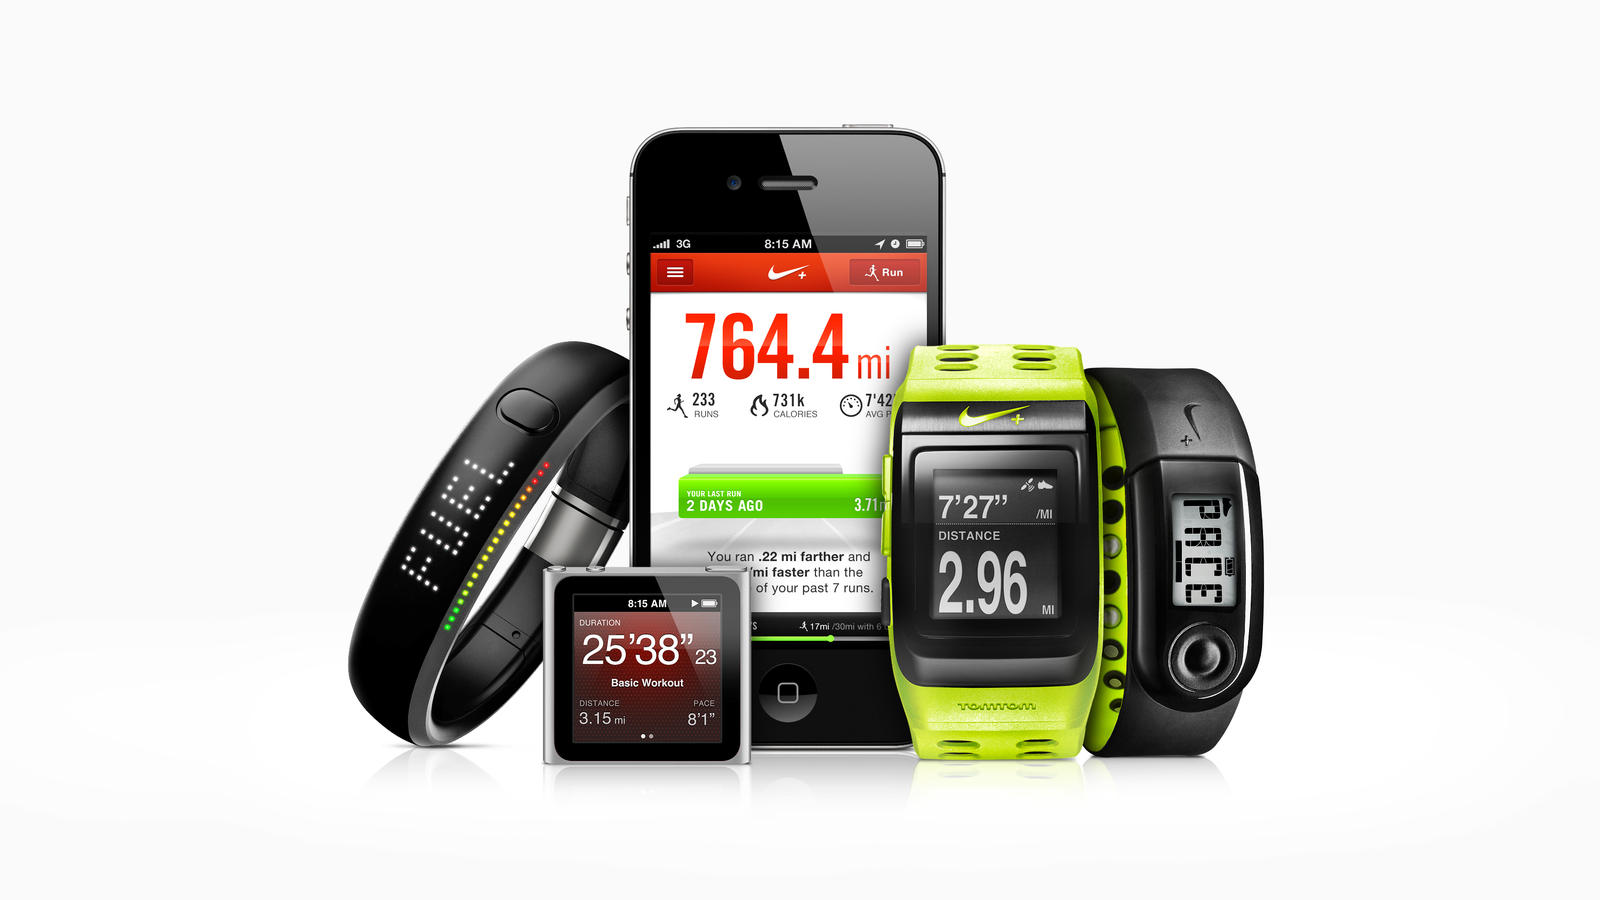 The New Nike+ Running Experience